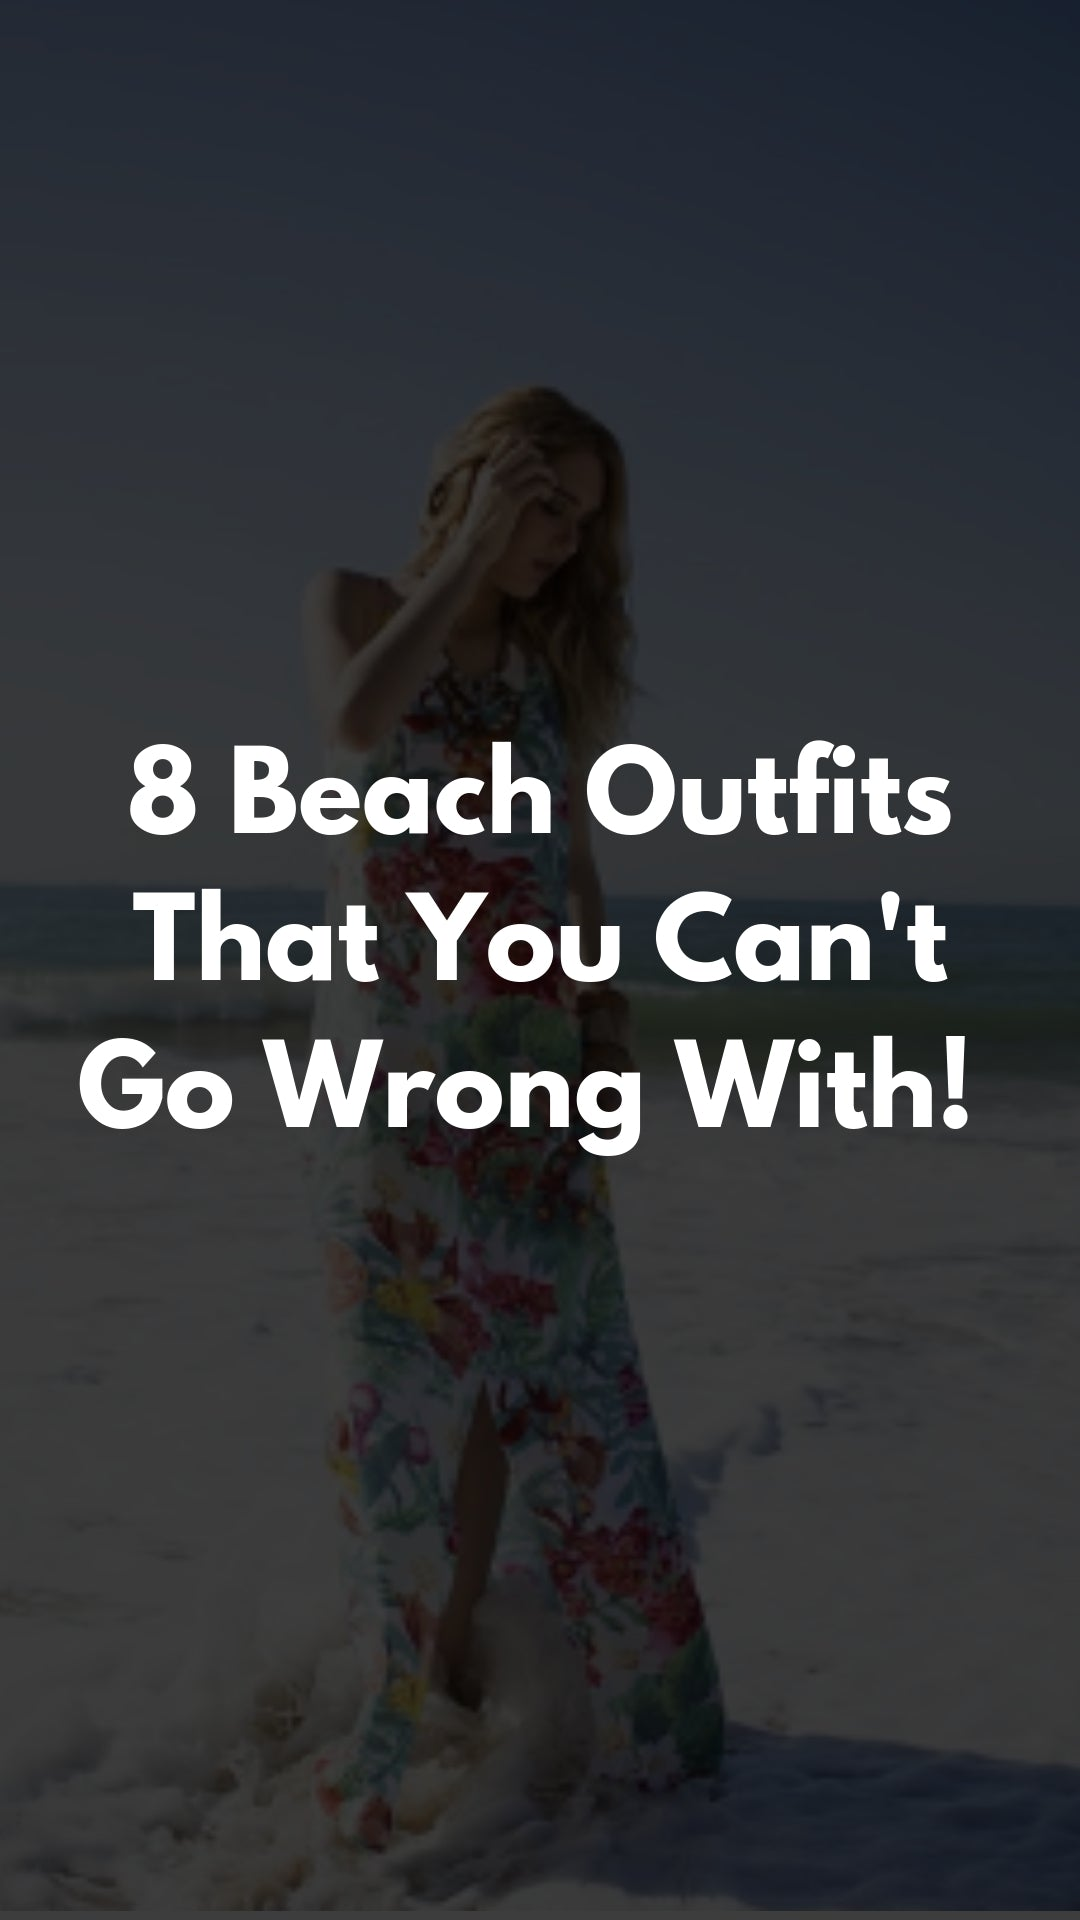 8 Beach Outfits That You Can't Go Wrong With! #beachoutfits